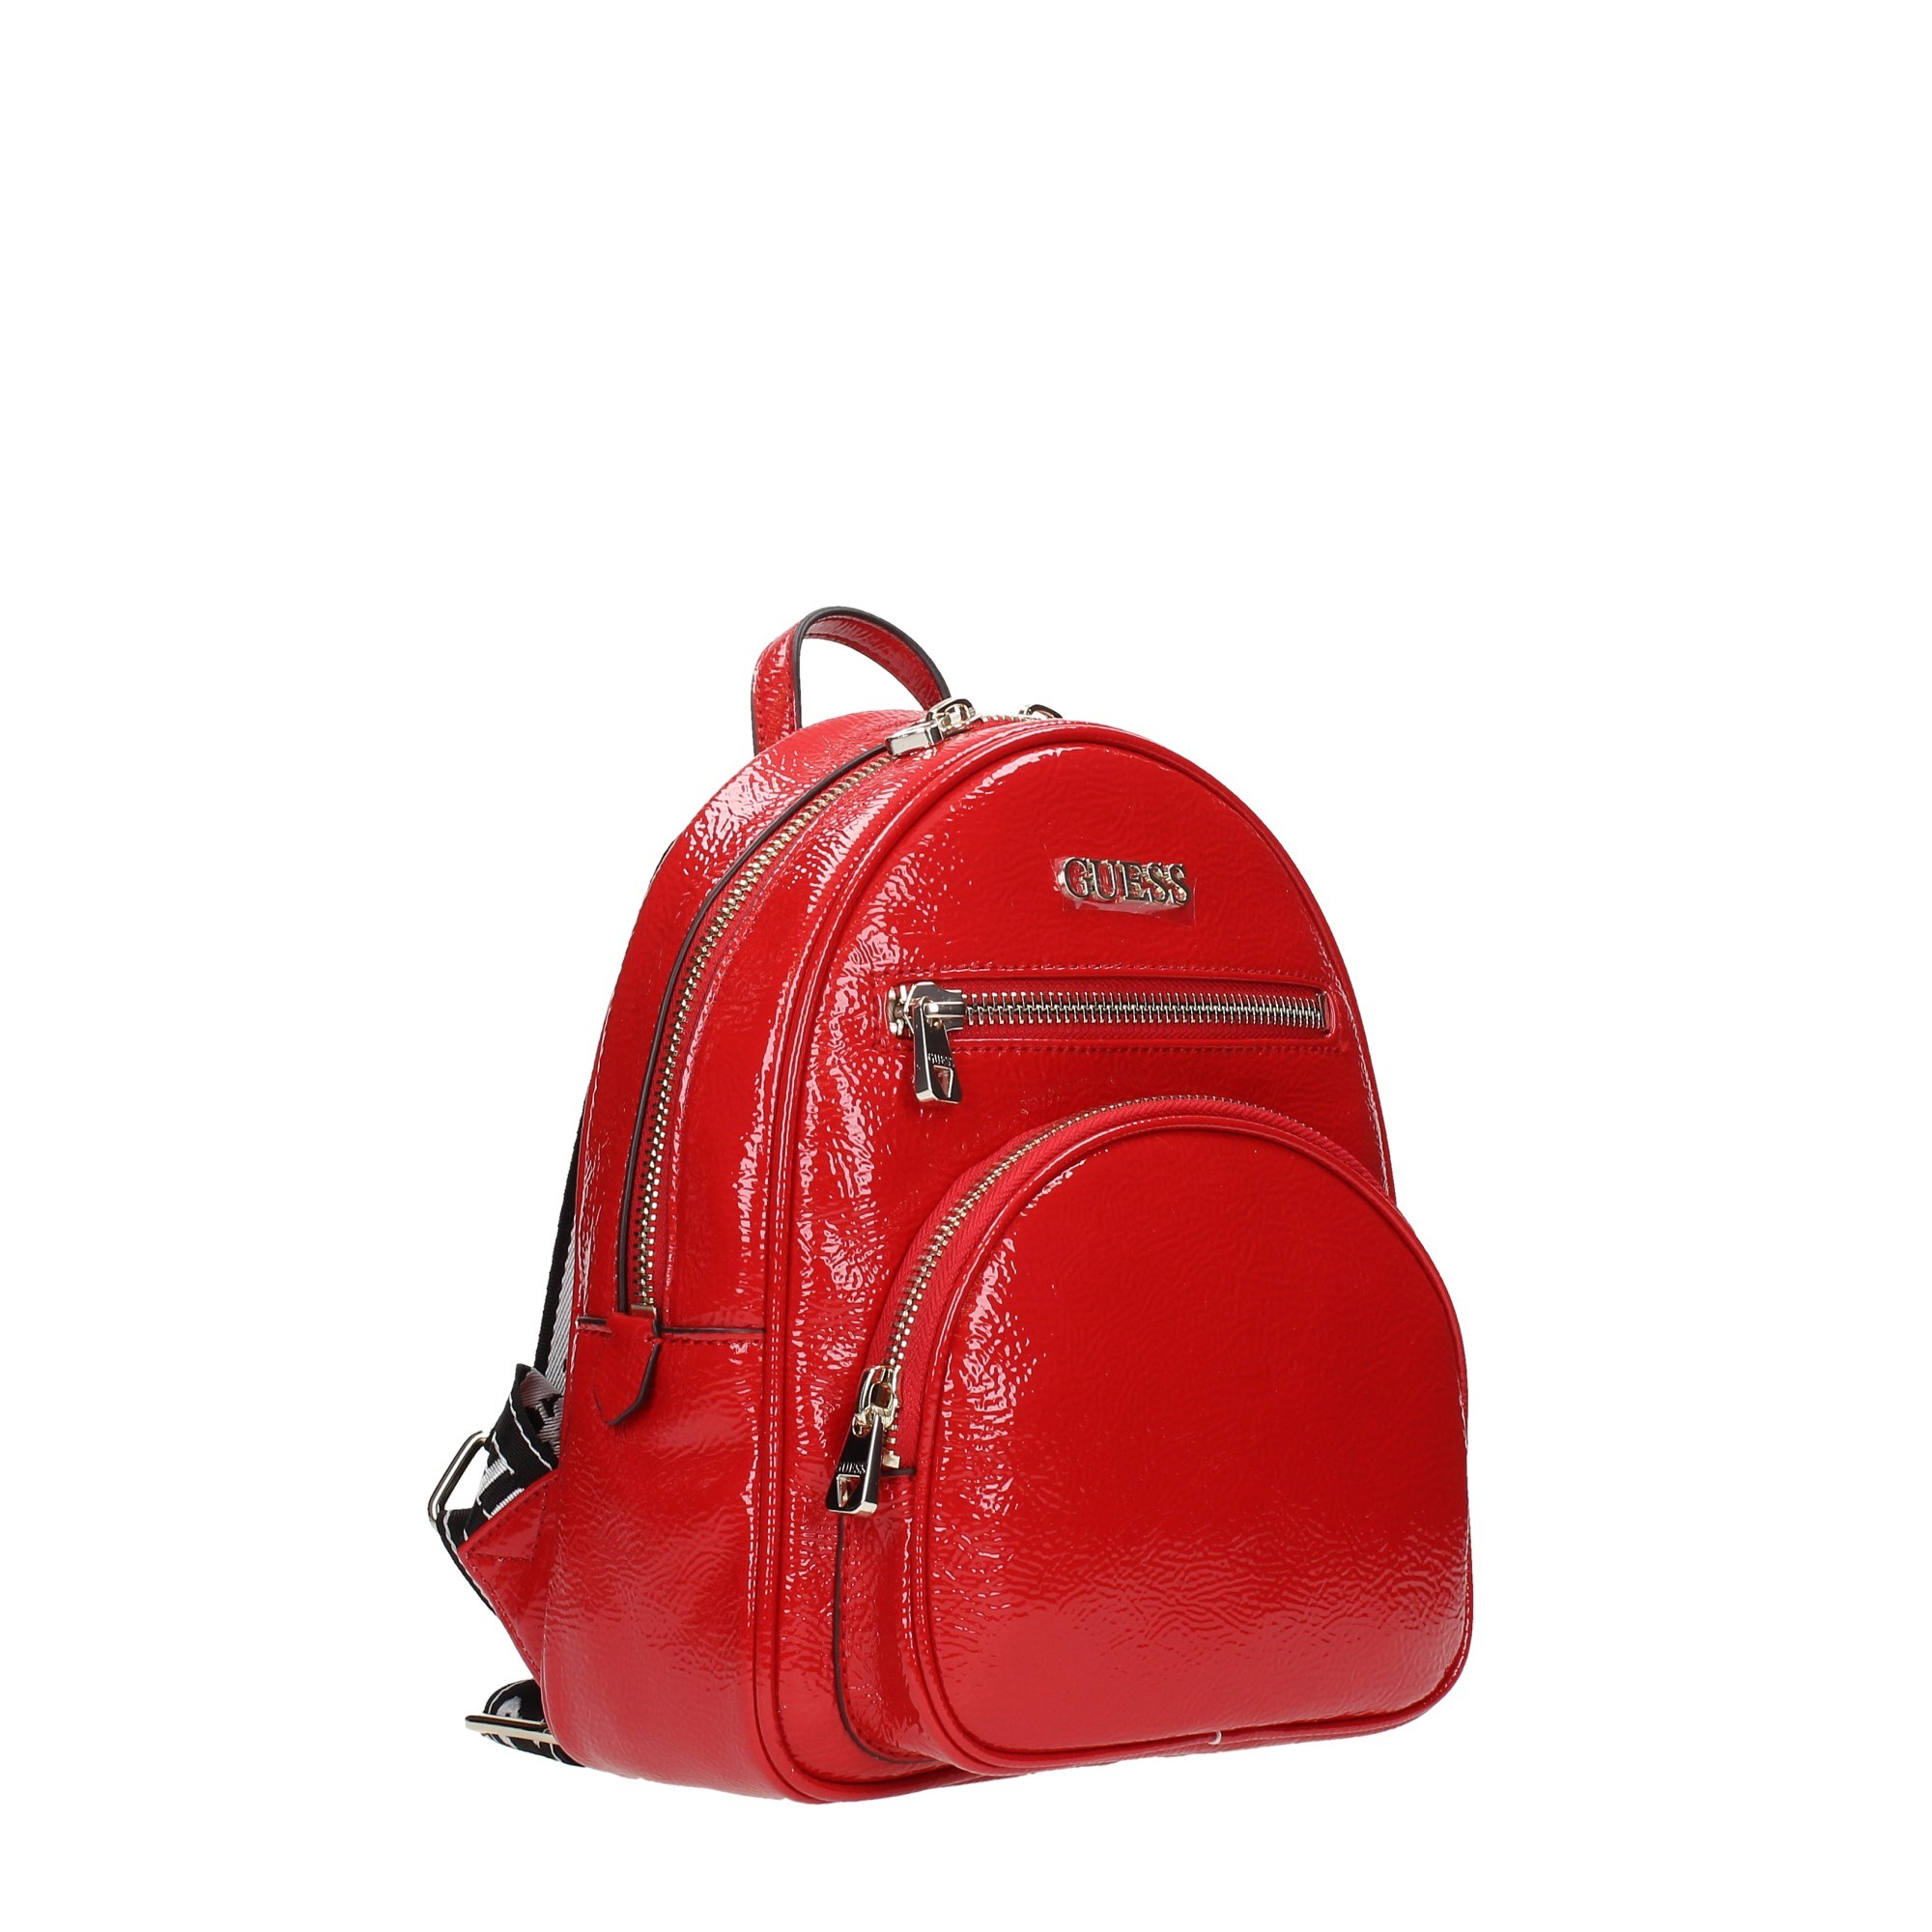 Guess Borse Accessories Women Backpack Red HWPG77/50320